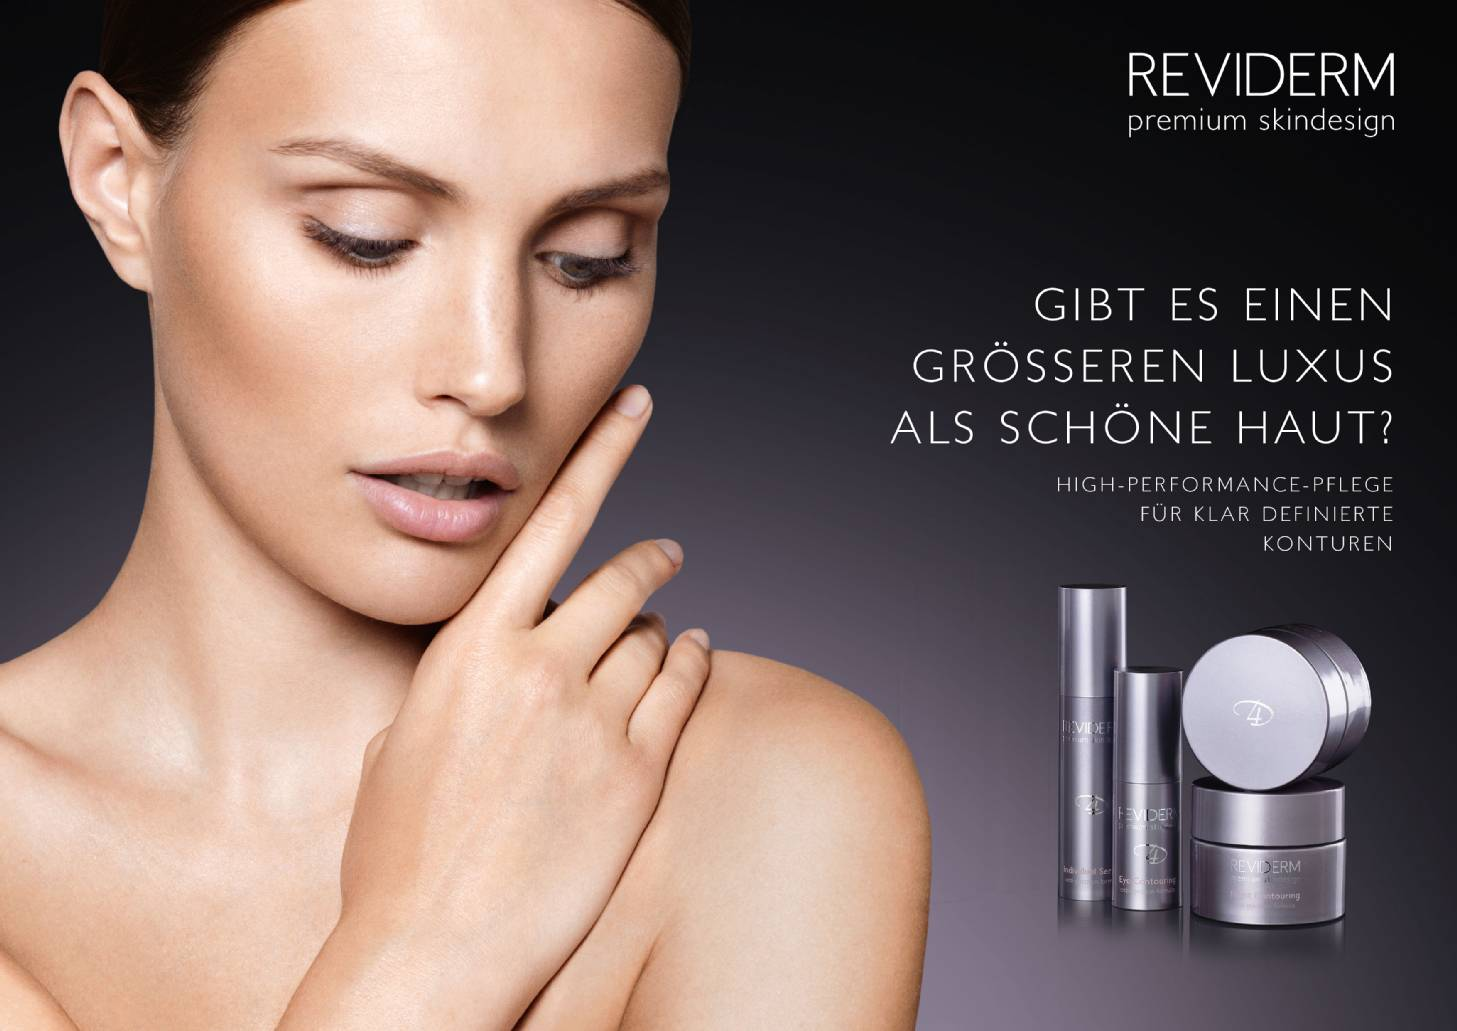 Reviderm Premium Skindesign 4D Medical Beauty Kornder Raum Euskirchen Düren Köln